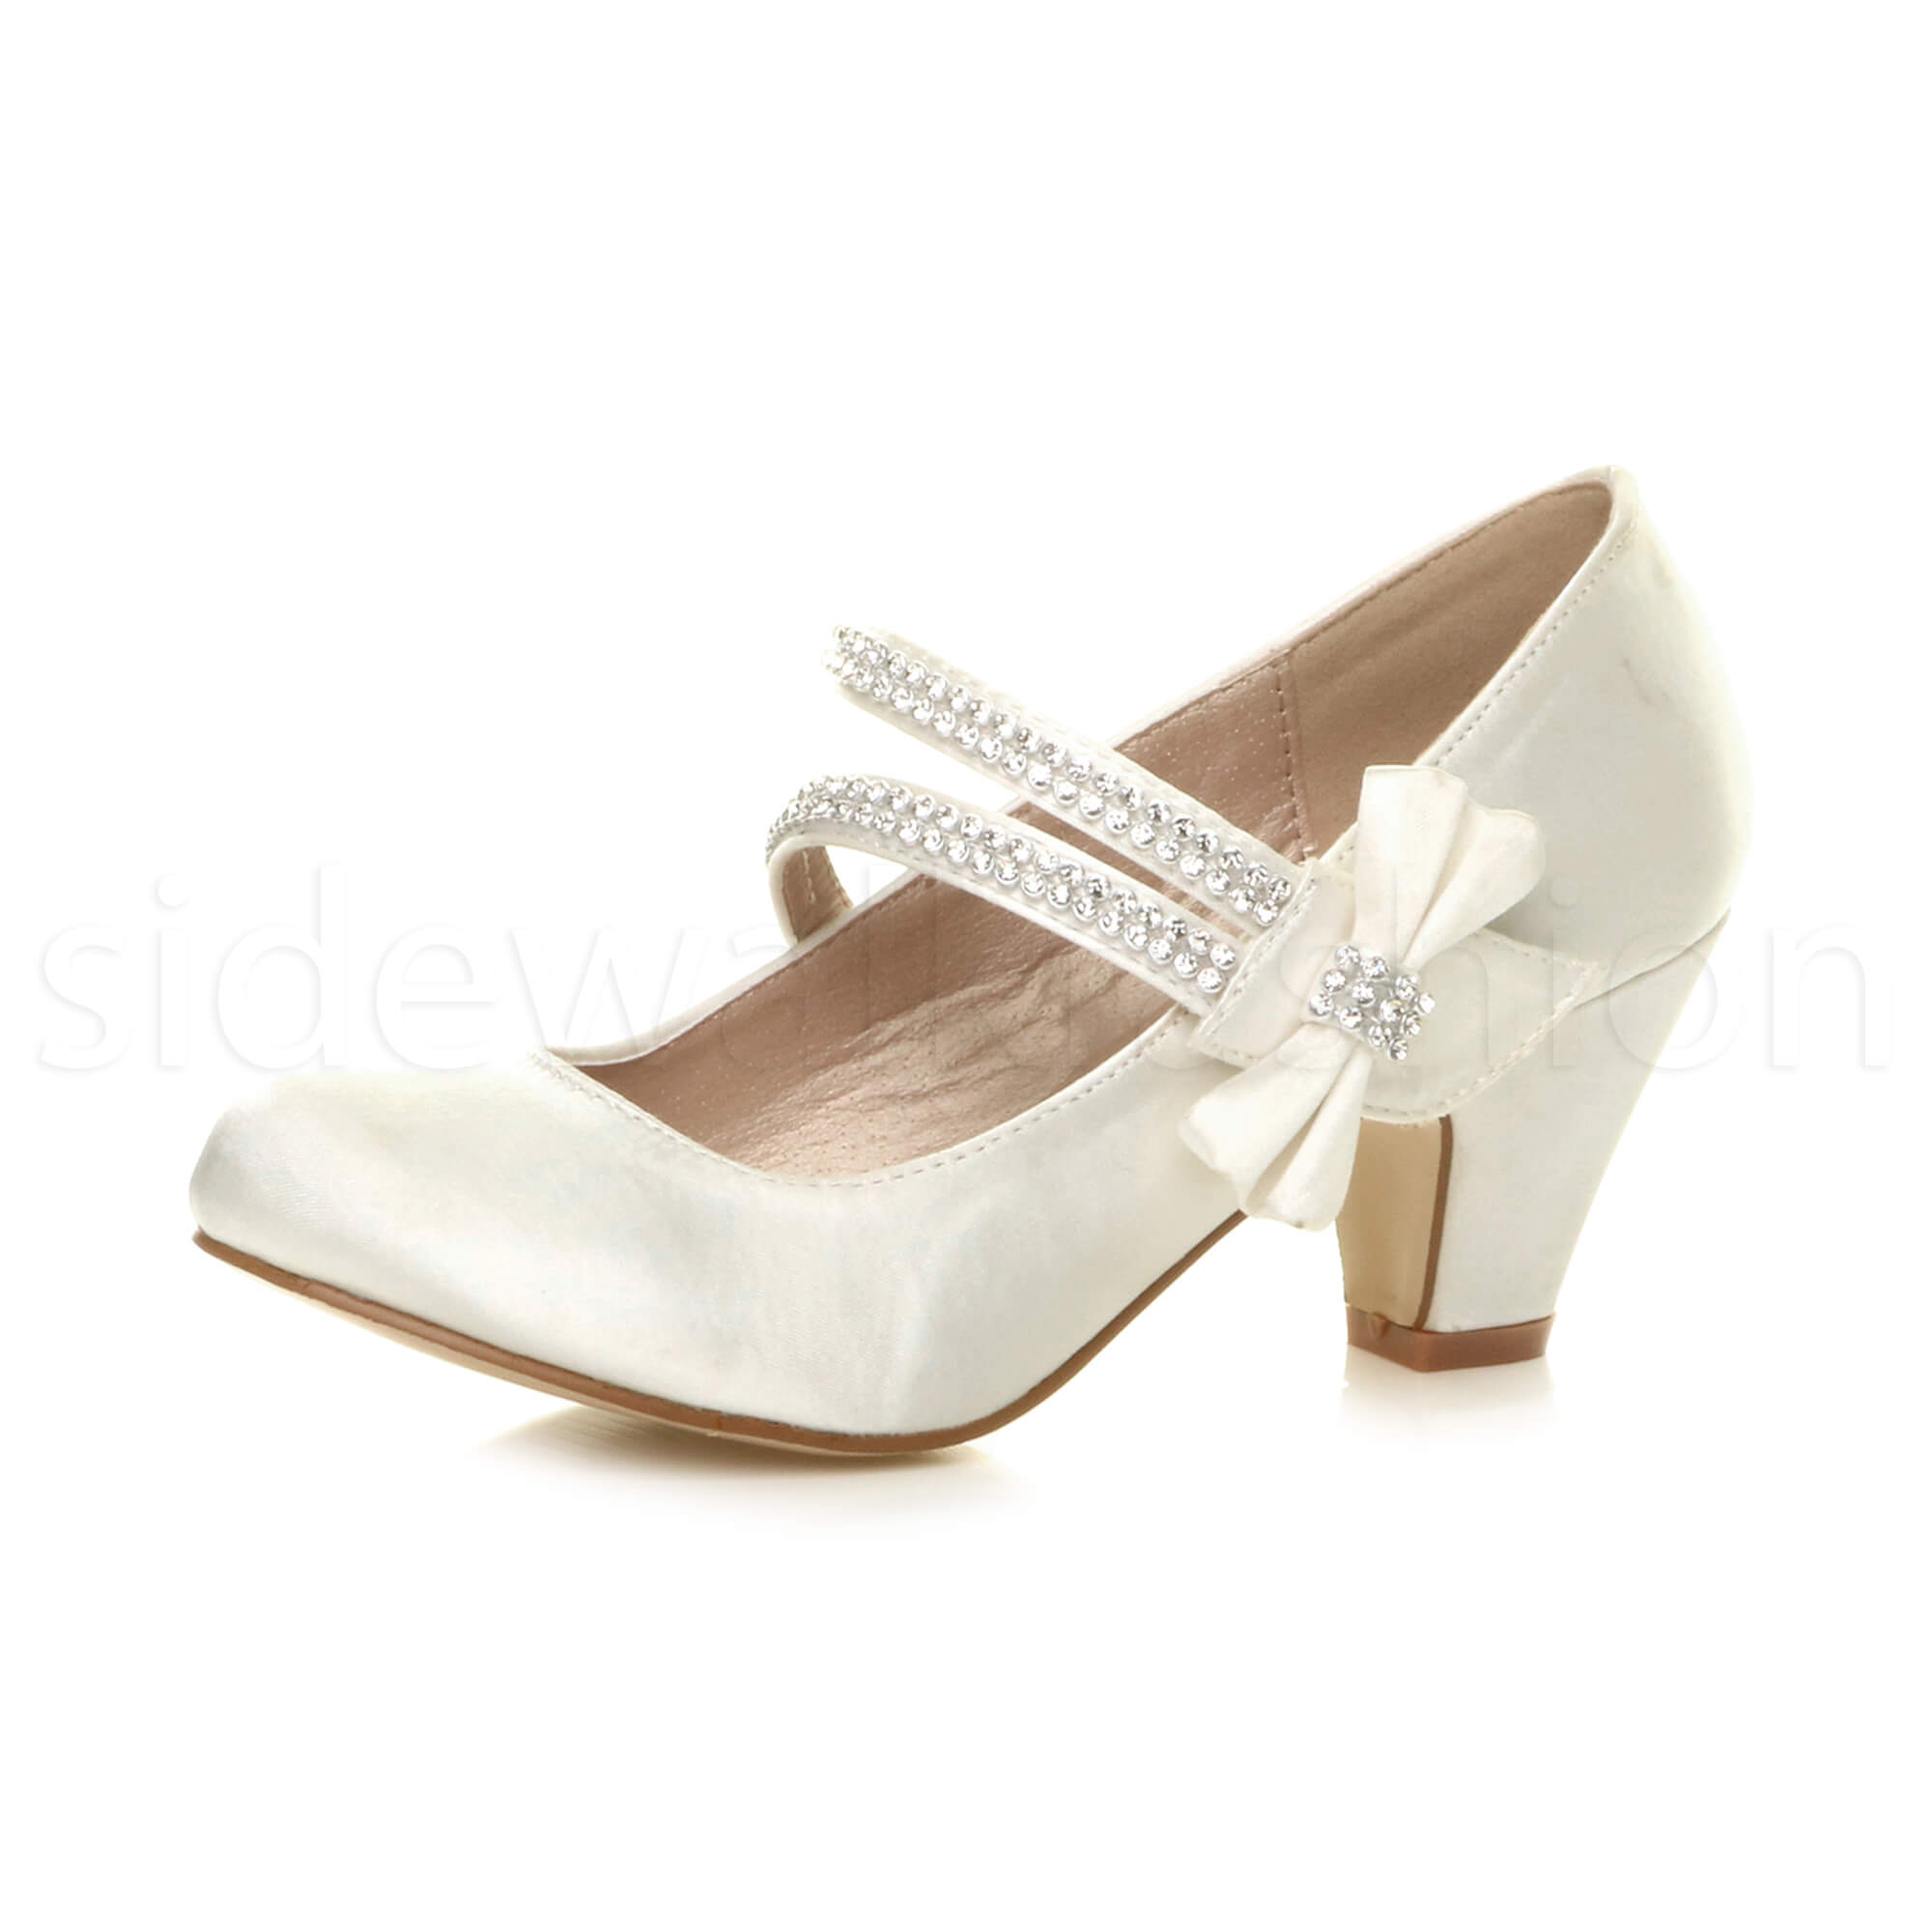 Mary Jane Court Shoes Low Heel